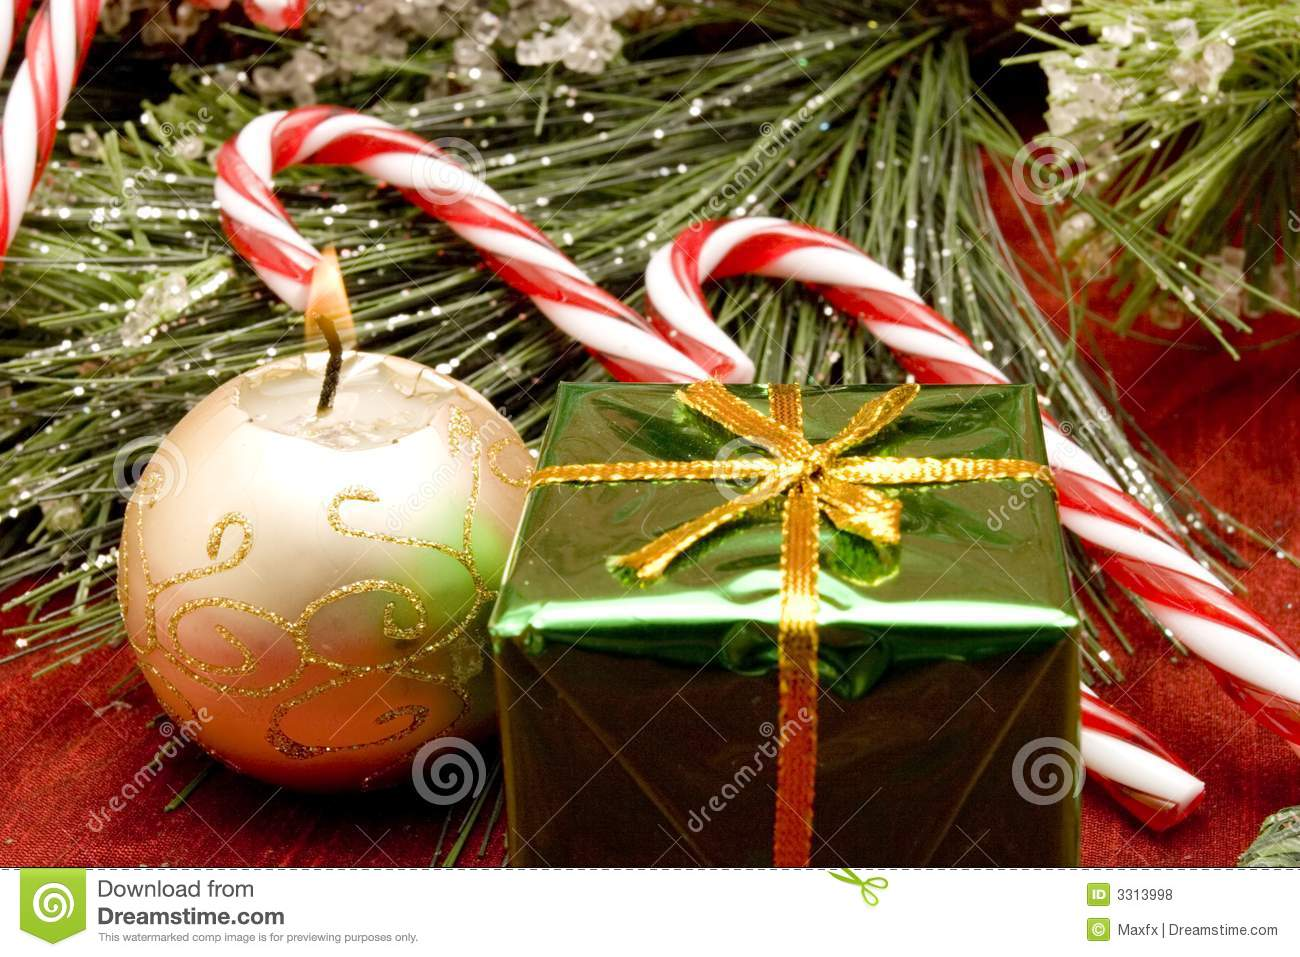 Beautiful Christmas Ornaments Stock Photo - Image: 3313998